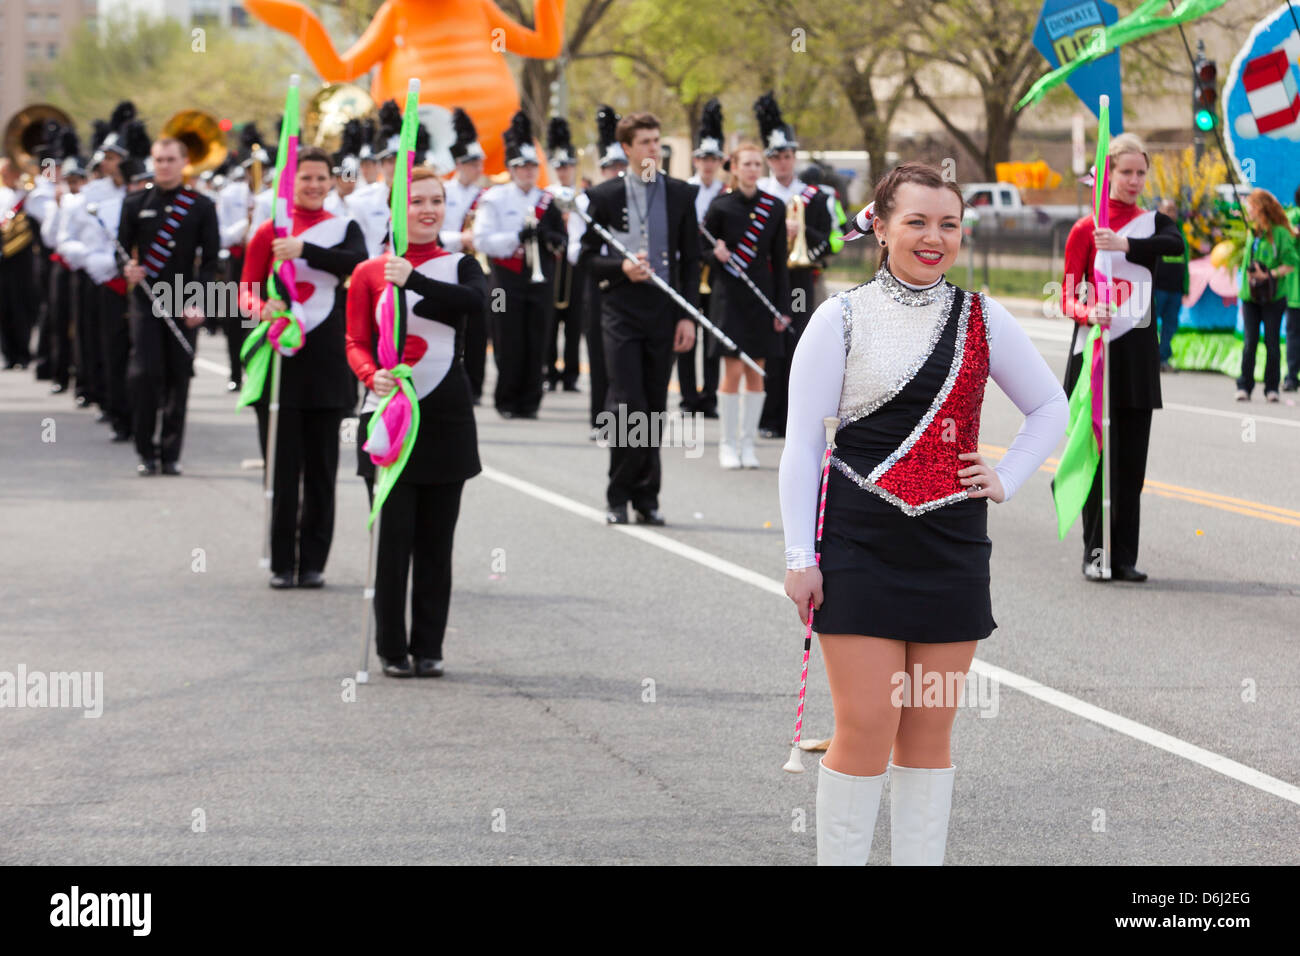 Baton twirler in high school band - Washington, DC USA - Stock Image